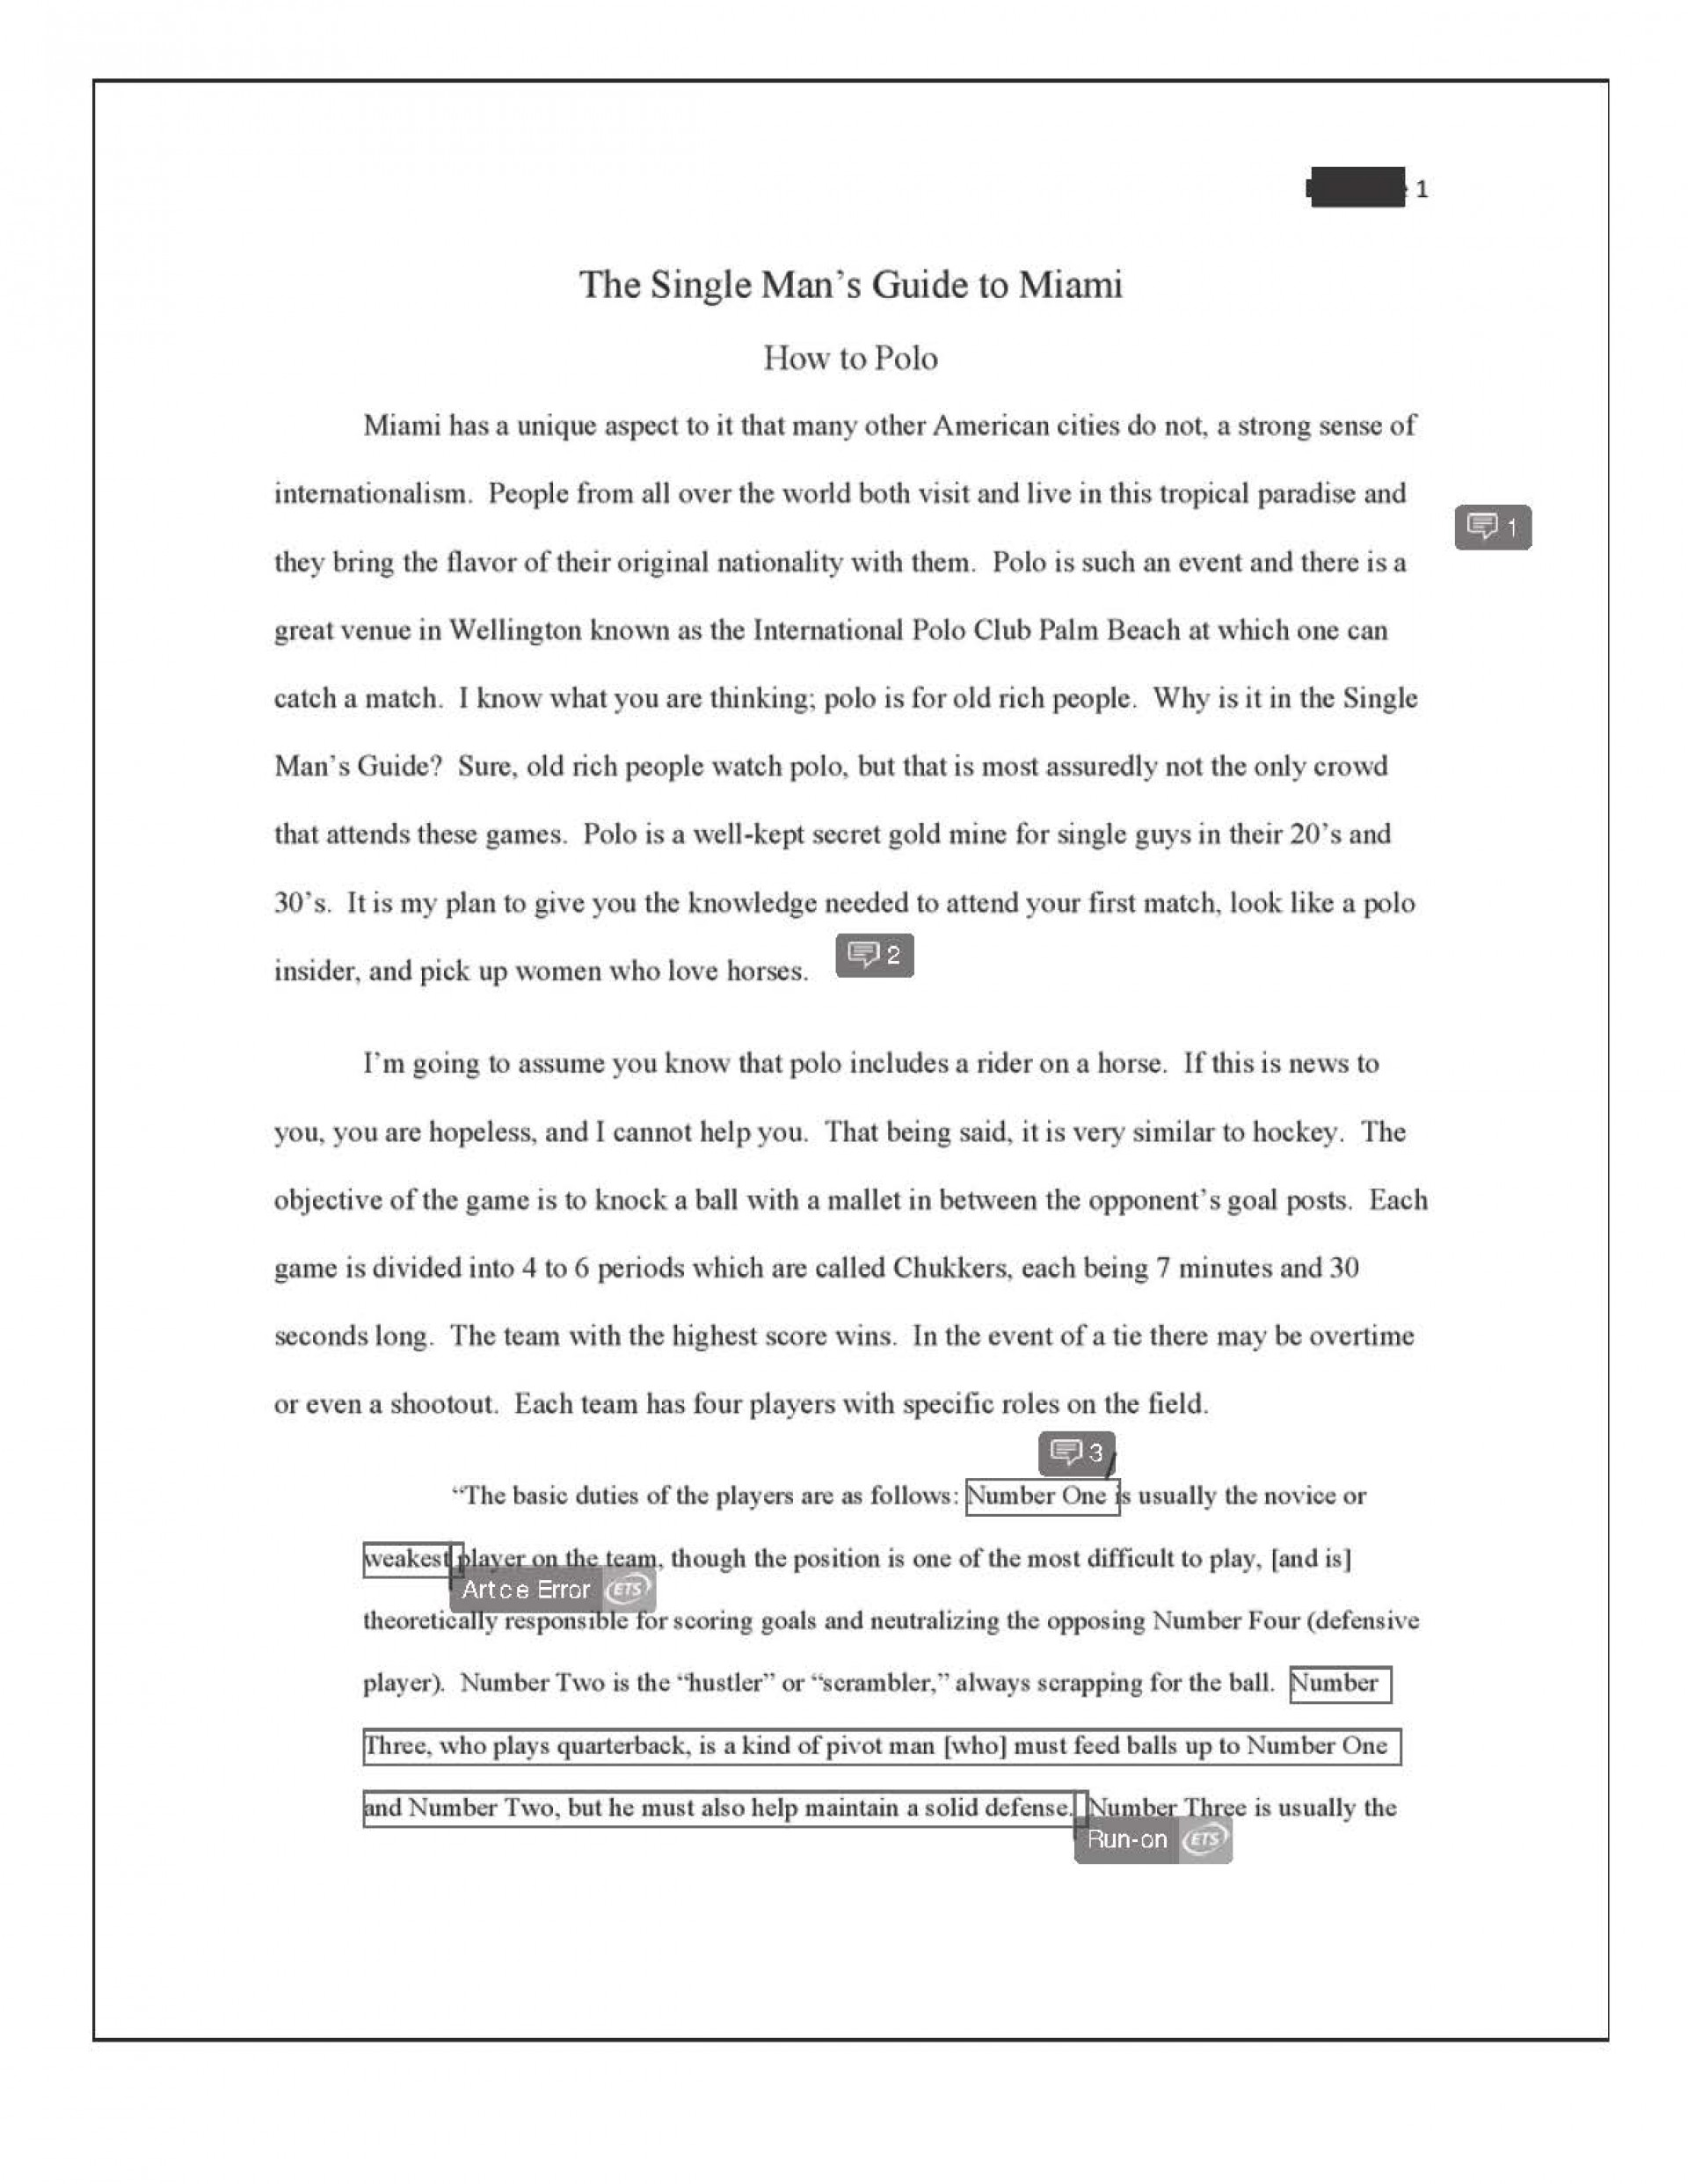 007 Informative Essay Kinds Of Writing Types Essays The Center In Hindi Final How To Polo Redacted P Pdf Task Slideshare Ppt Withs Wikipedia Dreaded Rubric Middle School Graphic Organizer 1920